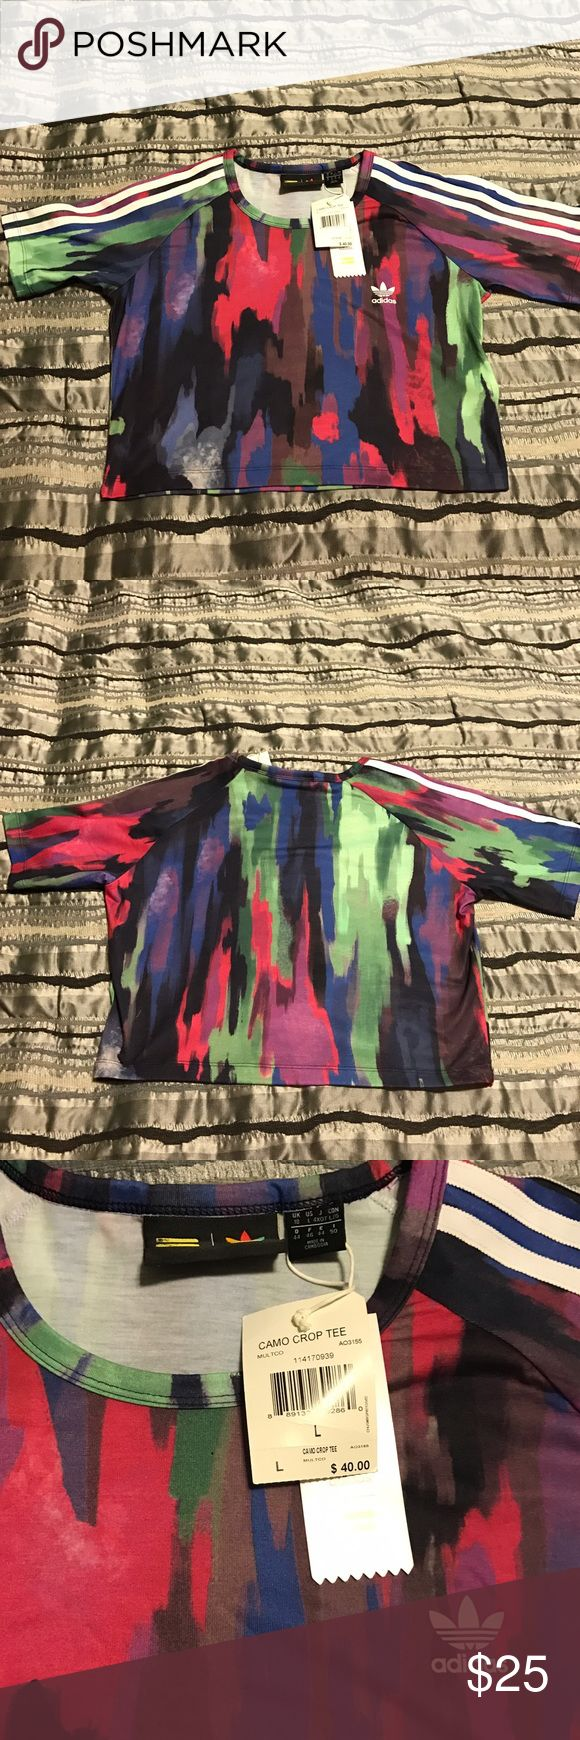 Authentic Brand New Adidas Camo Crop Top brand new with tags Adidas Tops Crop Tops